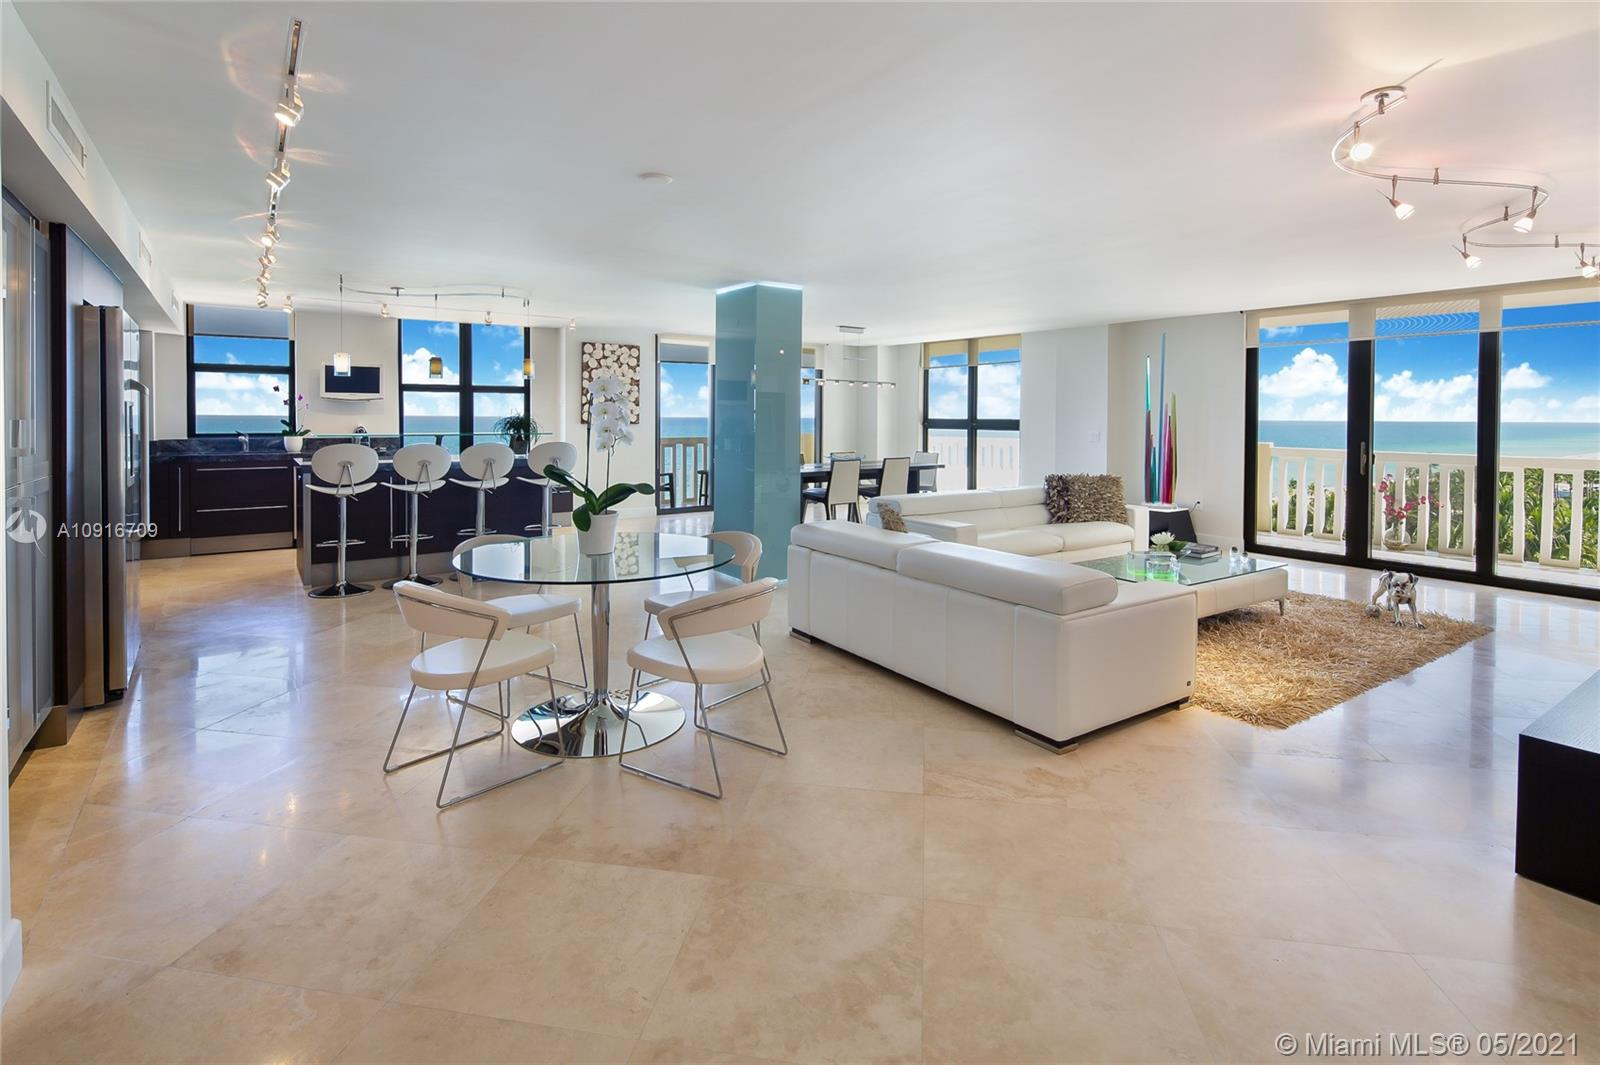 Looking for a great Location and direct ocean views home? Balmoral Unit 11B at Bal Harbour Florida is the unit for you! At this luxury Ocean front building, across Bal Harbor Shops, you will experience the uniqueness of what Bal Harbour has to offer. Unit #11B has a unique open floor plan with a corner balcony, amazing views and new hurricane windows, this 2 bedrooms and 2 1/2 baths unit make you feel you are in your own cruise. Balmoral is a 5 stars amenities building, 3 tennis courts, restaurant, gym, playing area, Party salon, hair salon, Spa, Dentist, a large pool, storage, valet, 24 hours security, library, bar, piano and more.